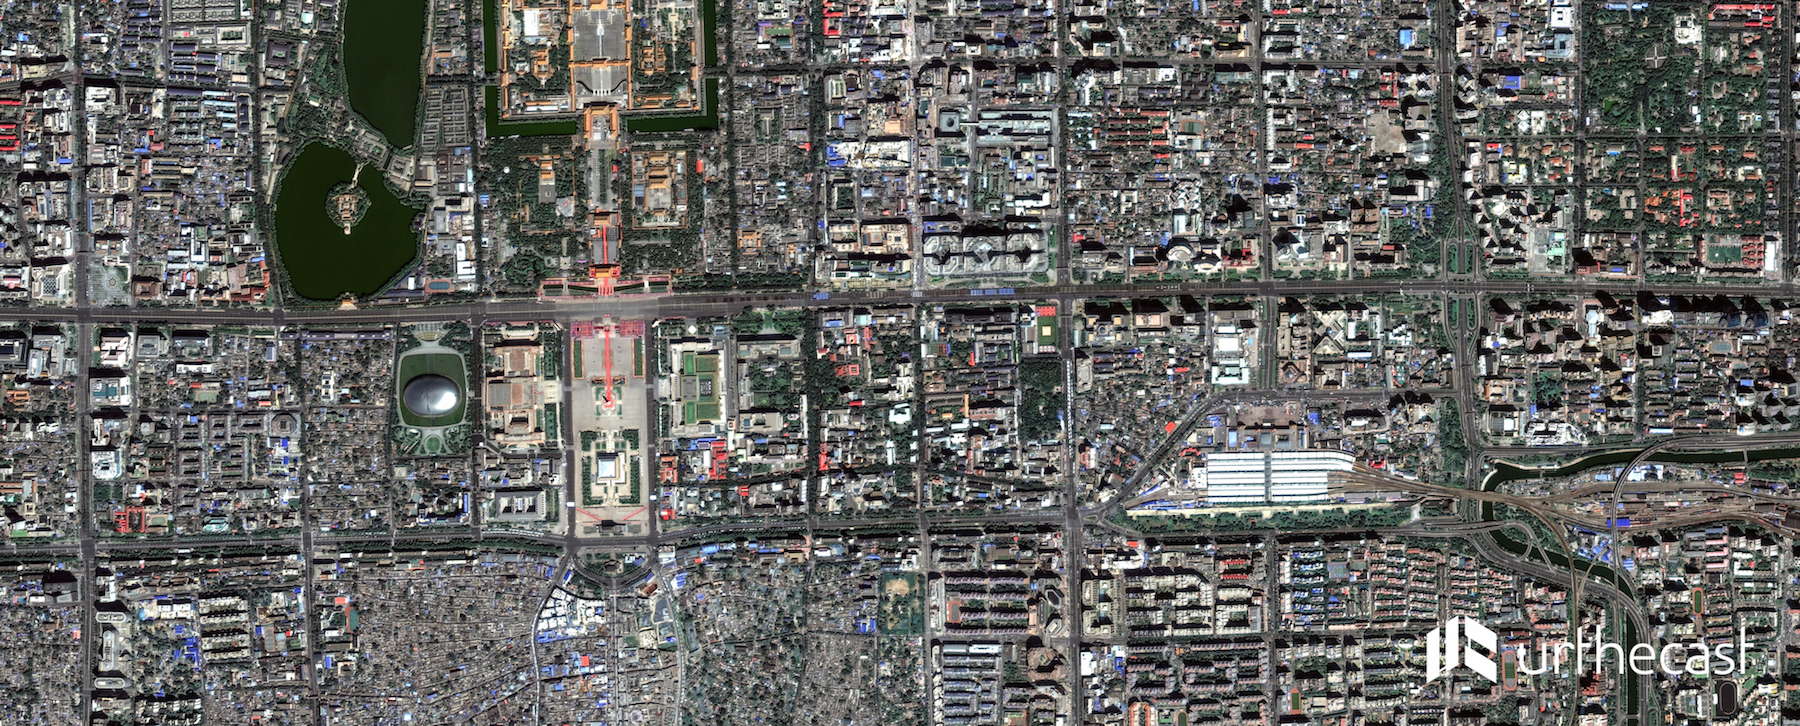 Tiananmen Square Military Parade, captured by UrtheCast's Deimos-2 satellite on Sept. 3, 2015.